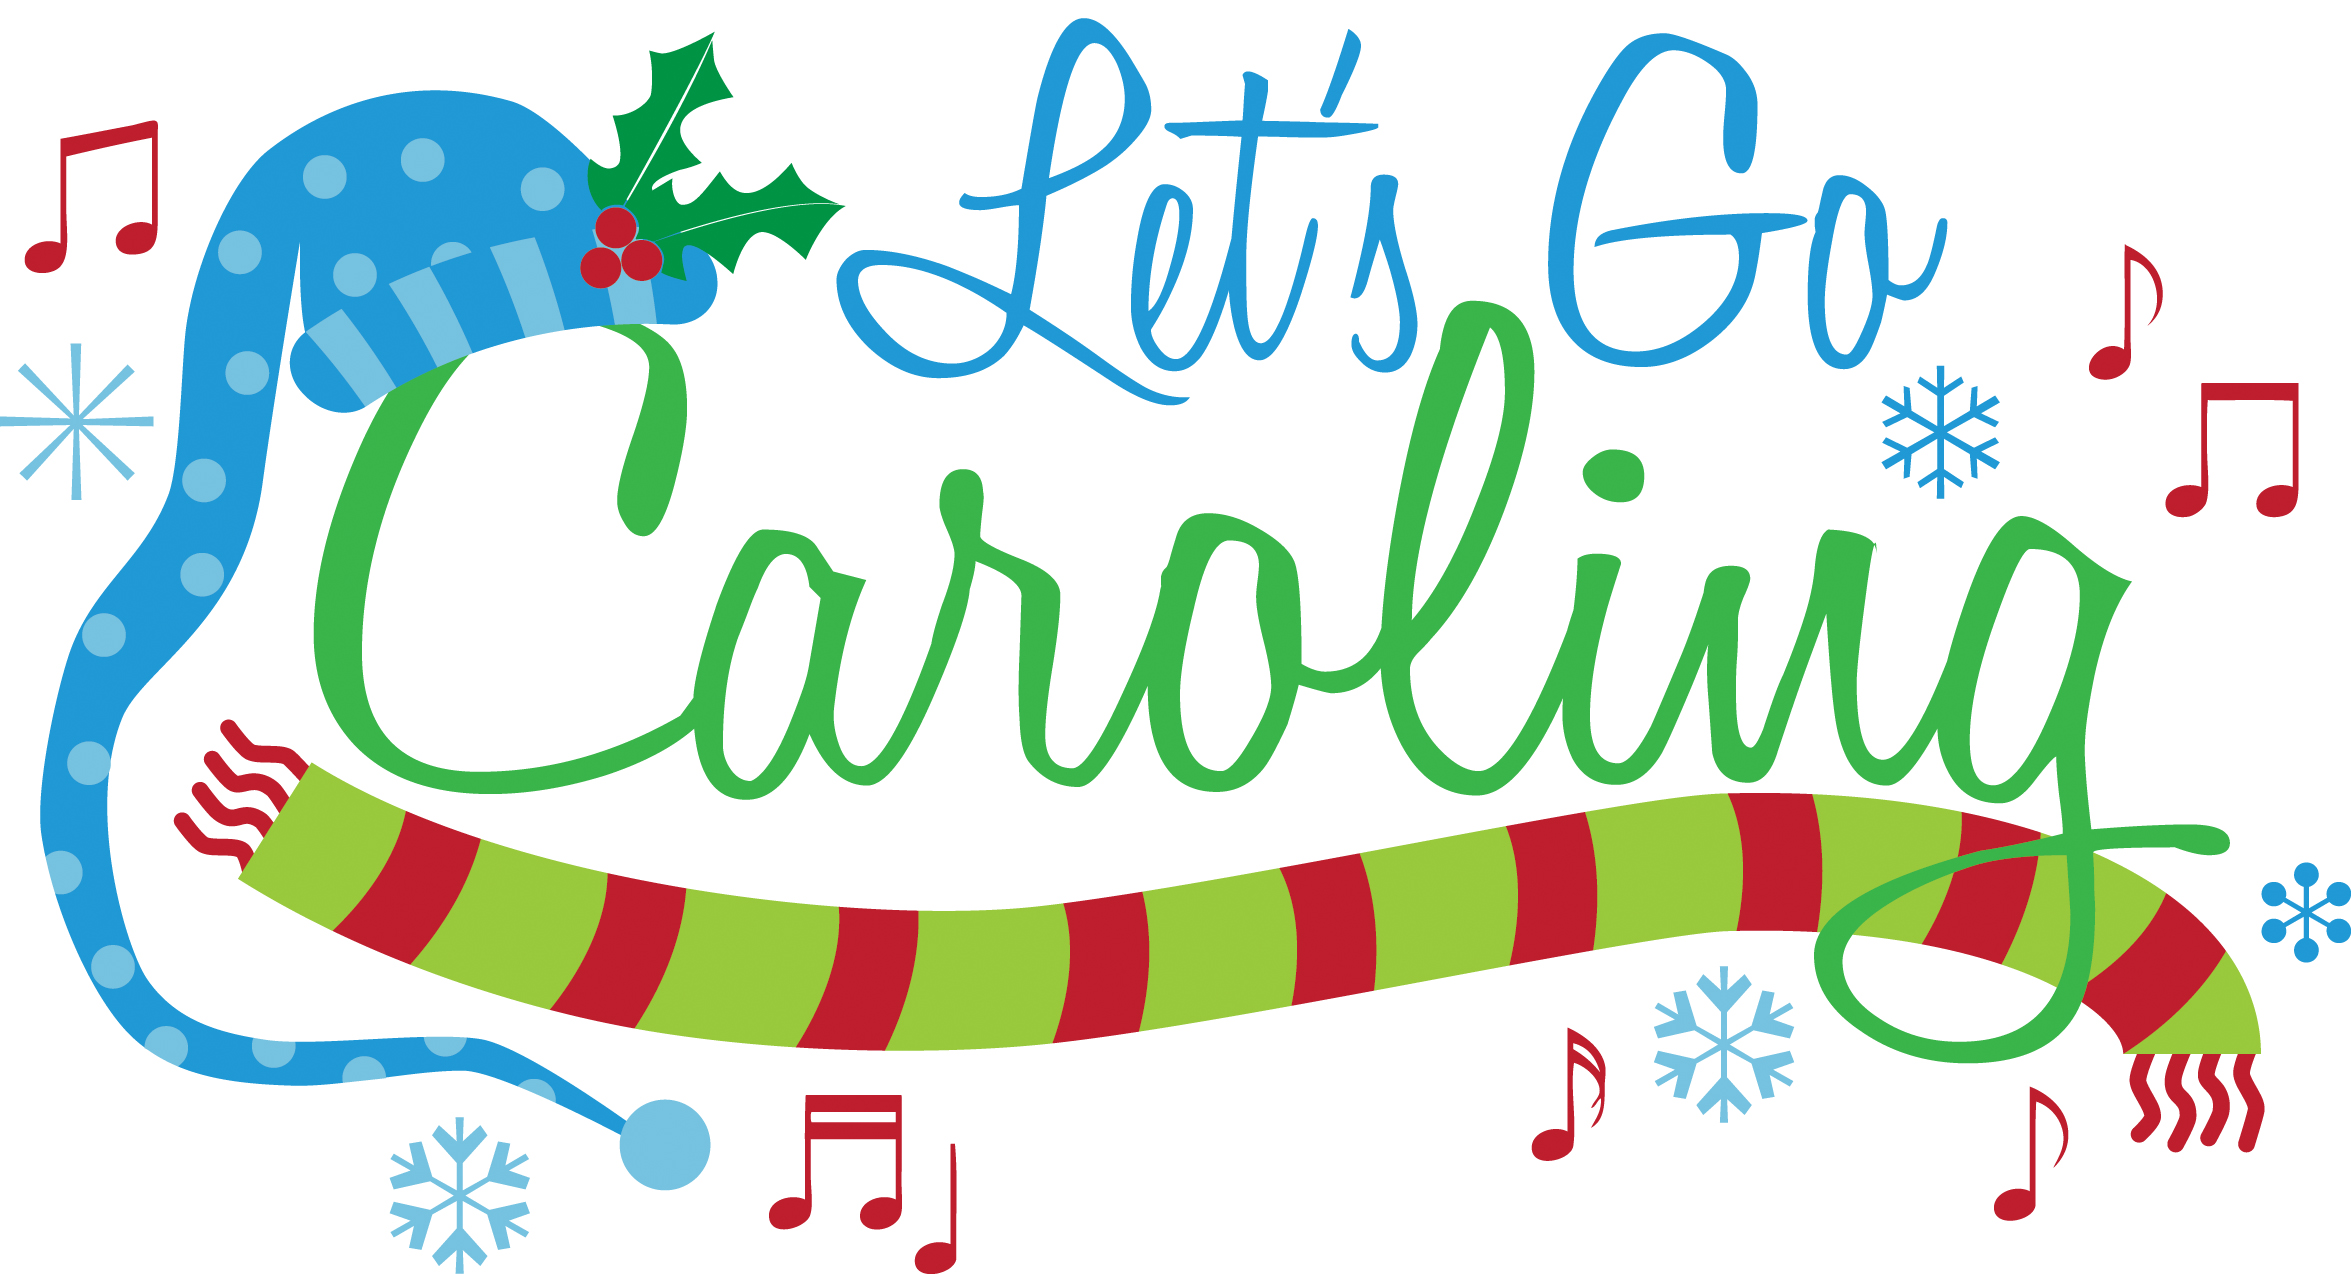 Christmas fairfax nursing home. Caroling clipart december